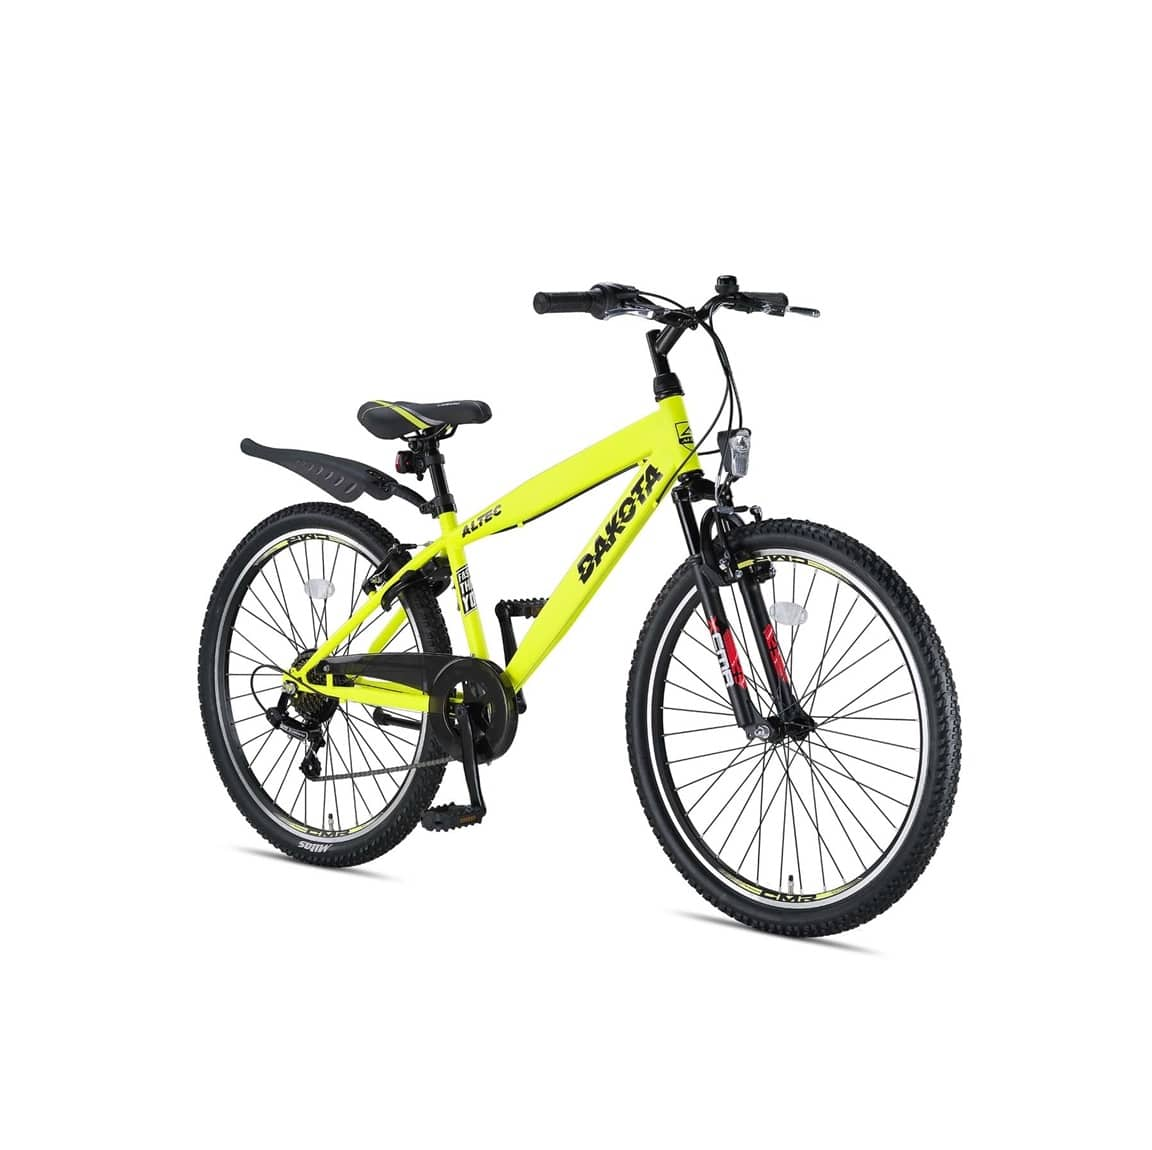 Altec-Dakota-26inch-Jongensfiets-7speed-2019-Neon-Lime-Nieuw-1-min